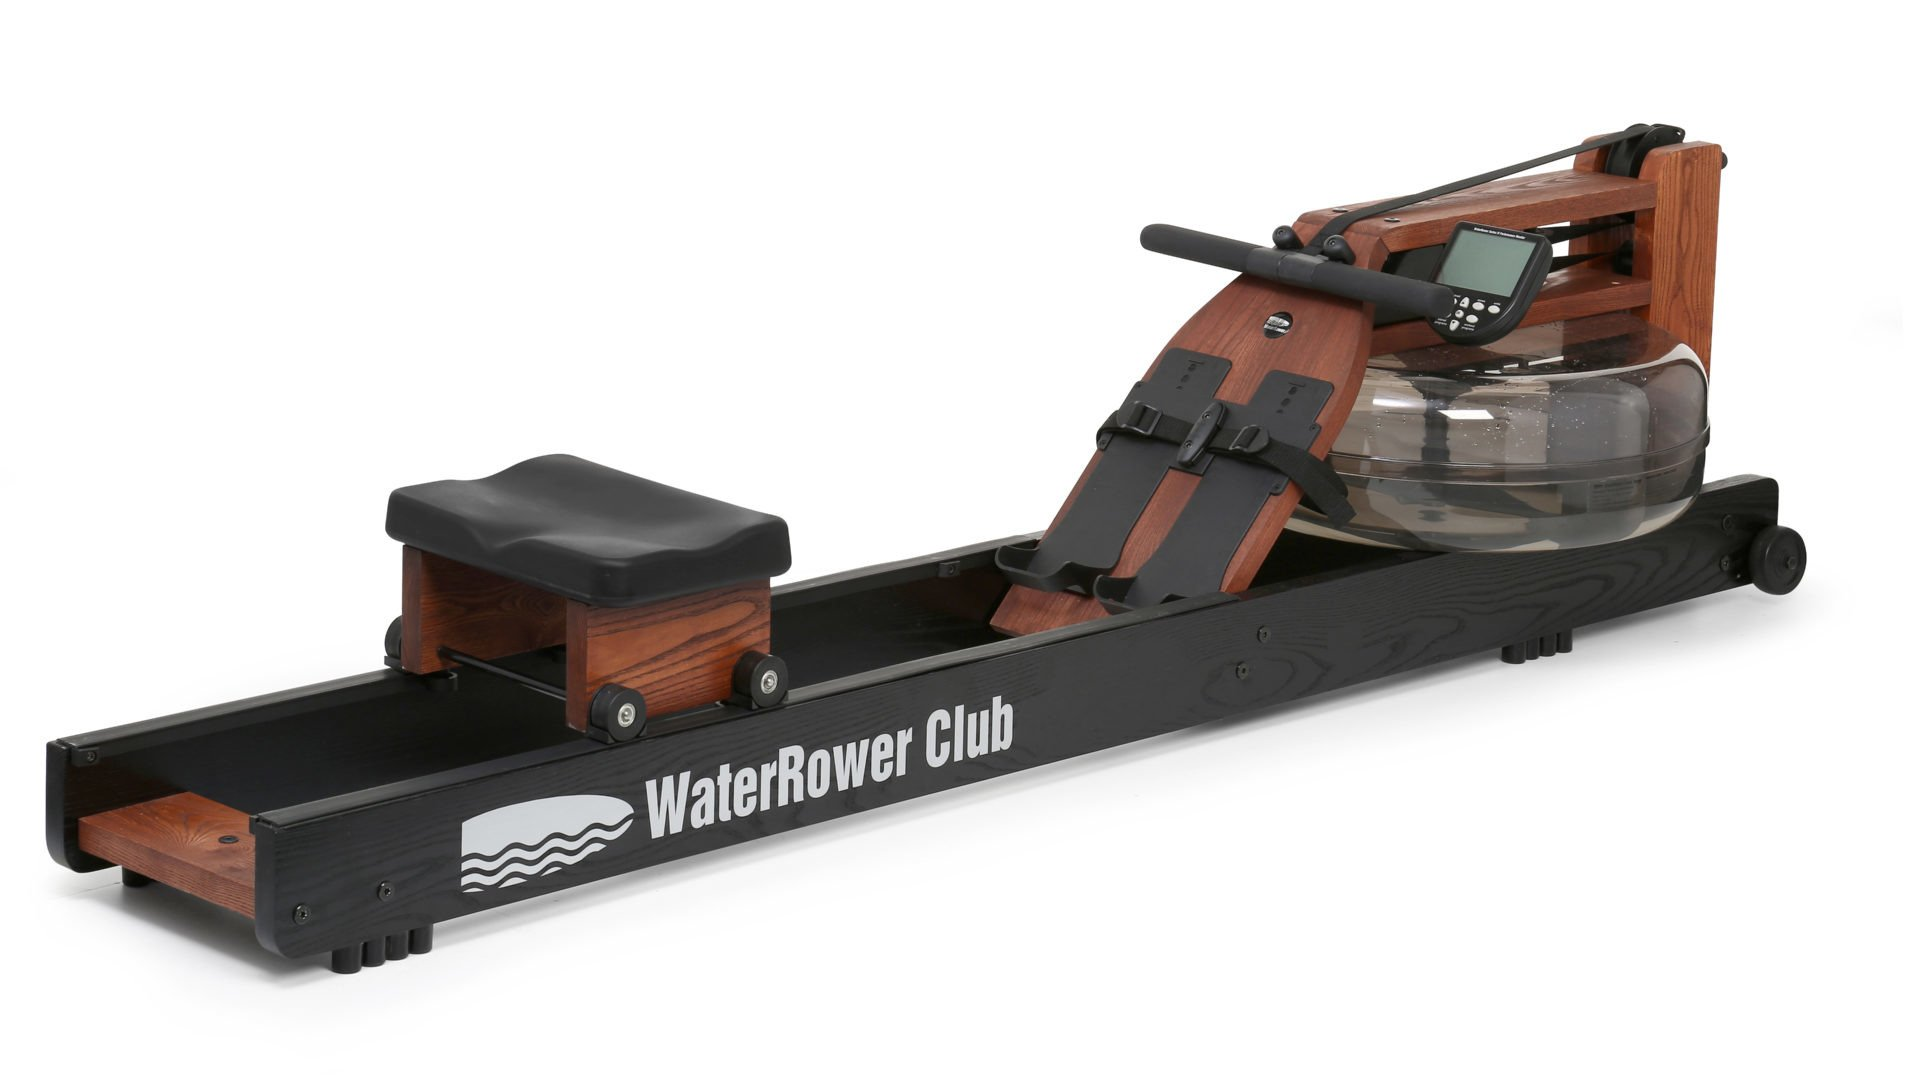 Wioślarz Club - WaterRower